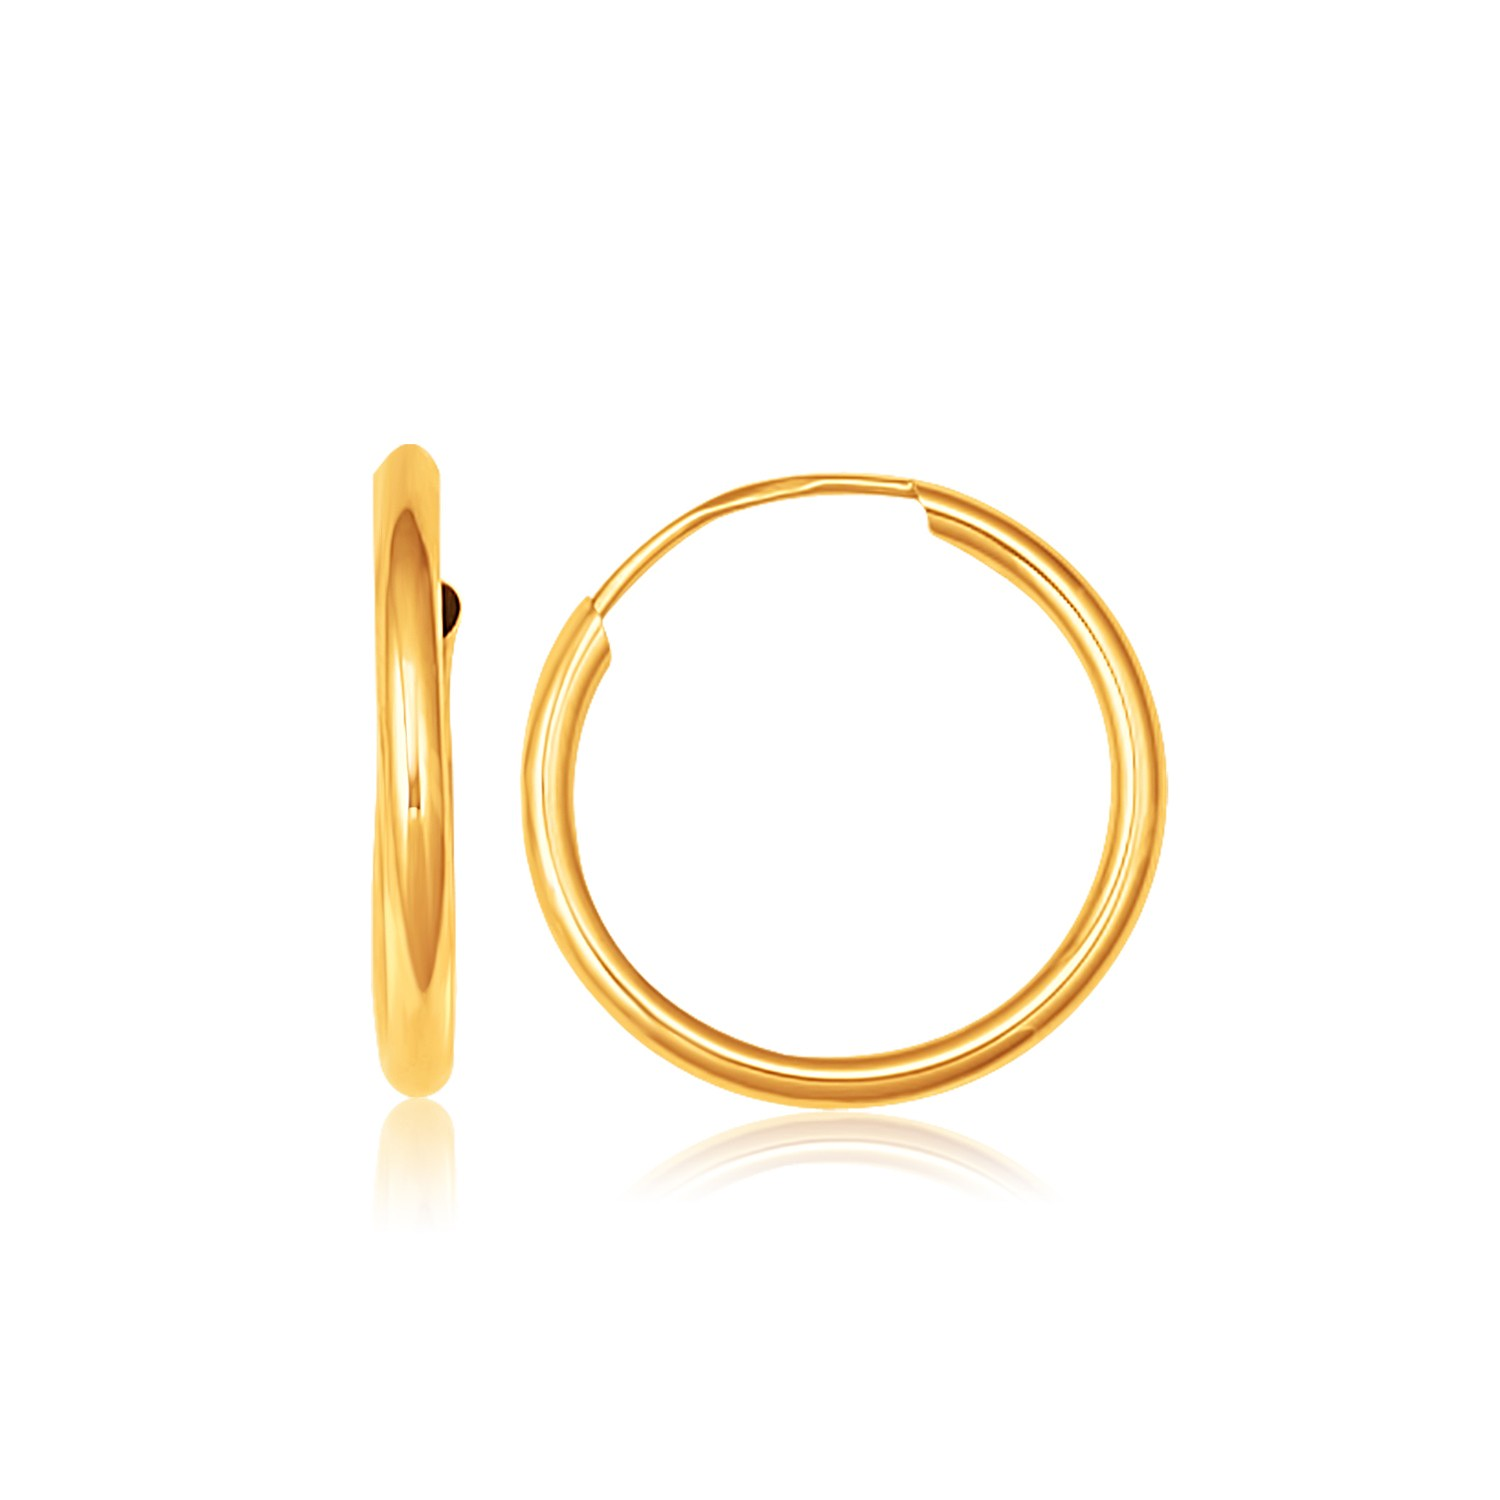 14K Yellow Gold Polished Diamond Cut 25mm Endless Hoop Earrings